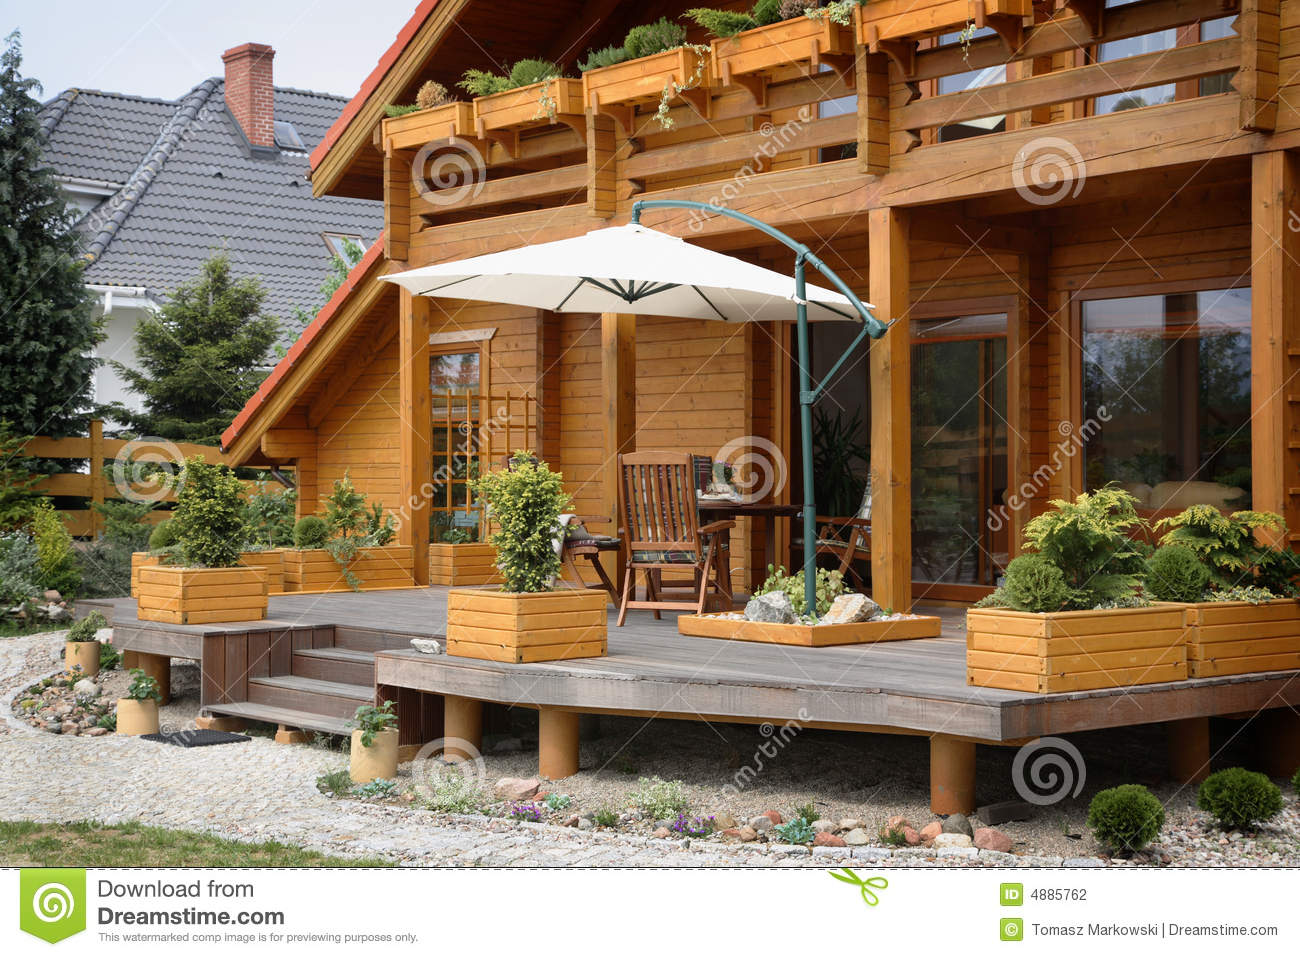 Patio of a Wood House